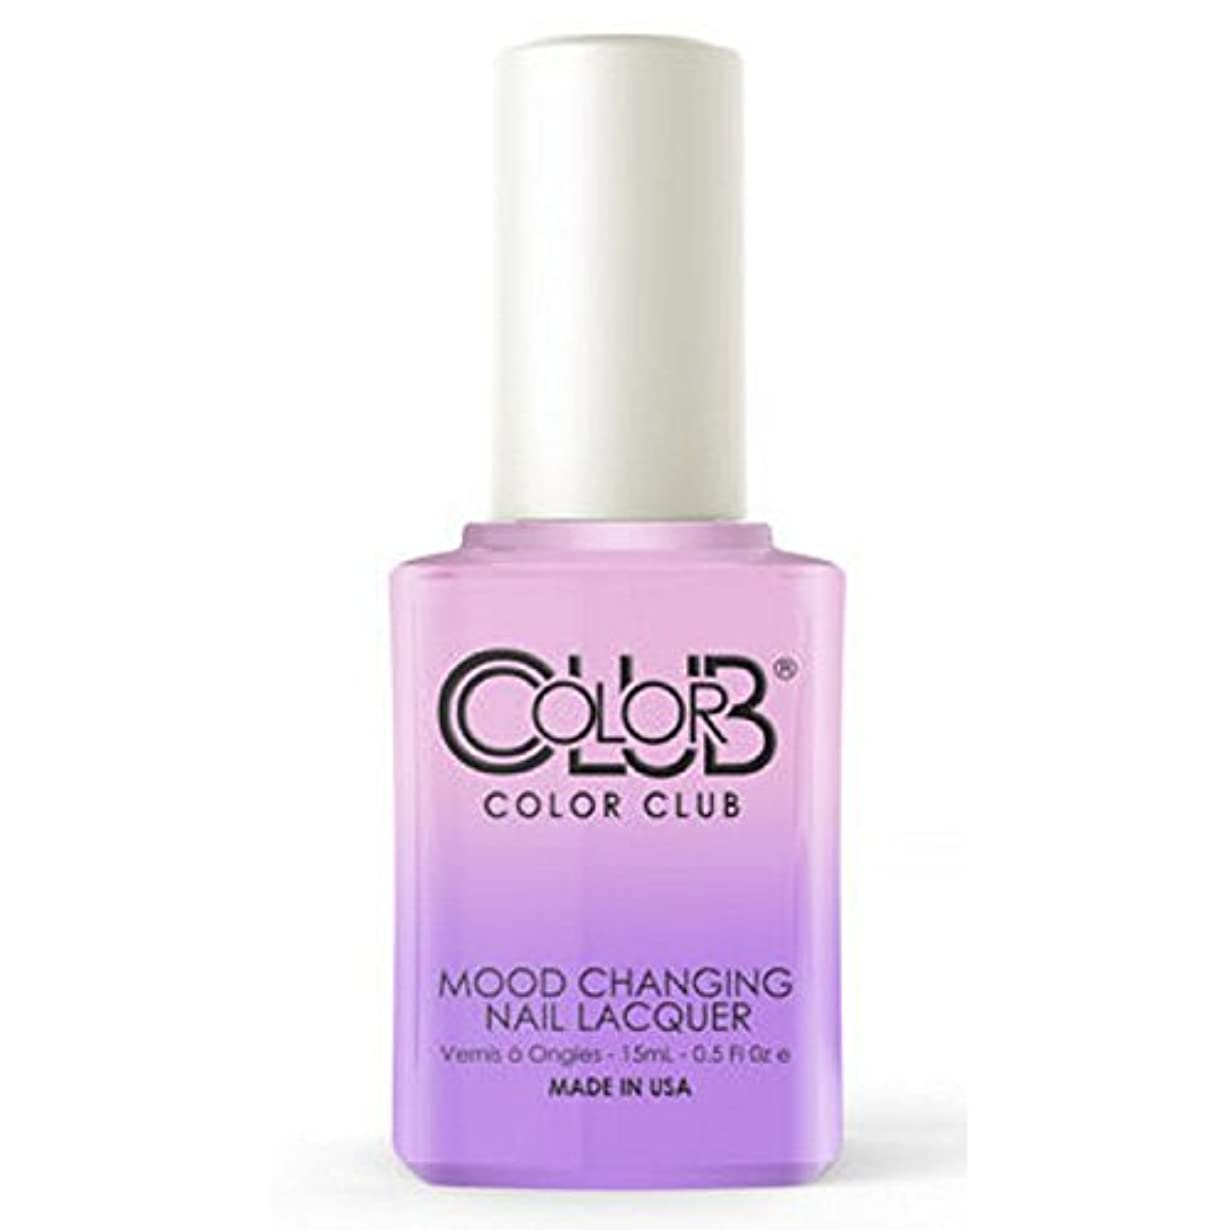 ウィンクネコアナウンサーColor Club Mood Changing Nail Lacquer - Go with the Flow- 15 mL / 0.5 fl oz